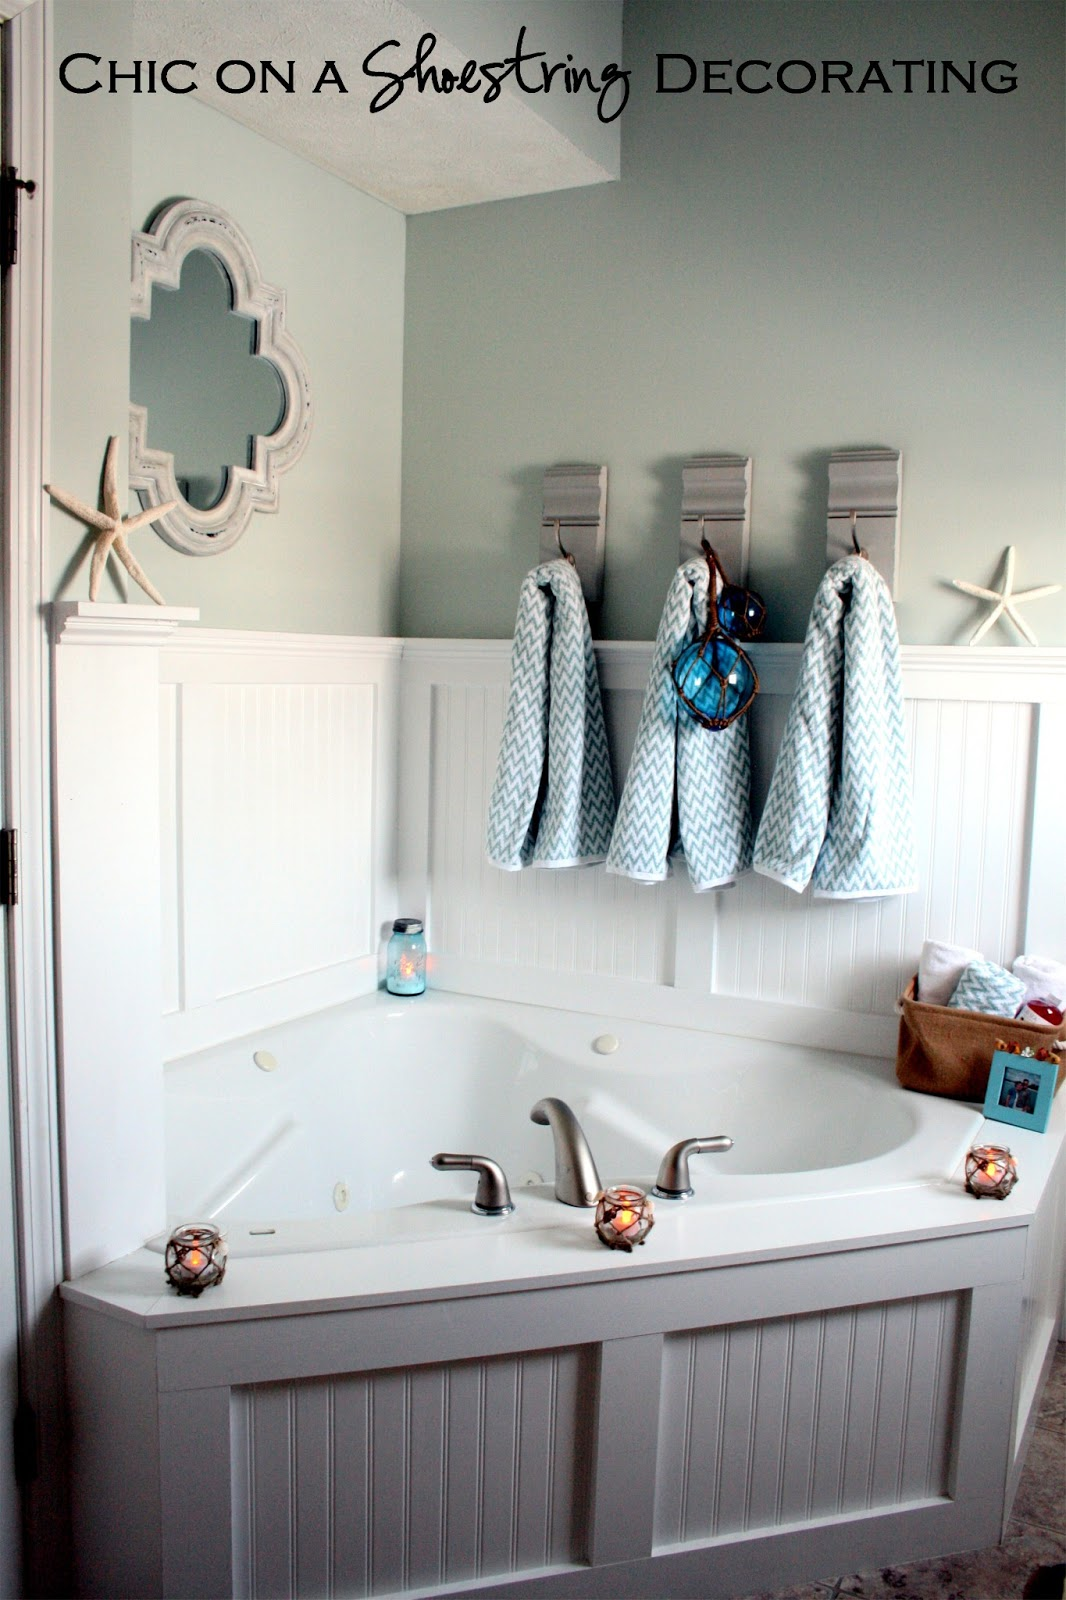 Chic on a shoestring decorating beachy bathroom reveal for Master bathroom decor